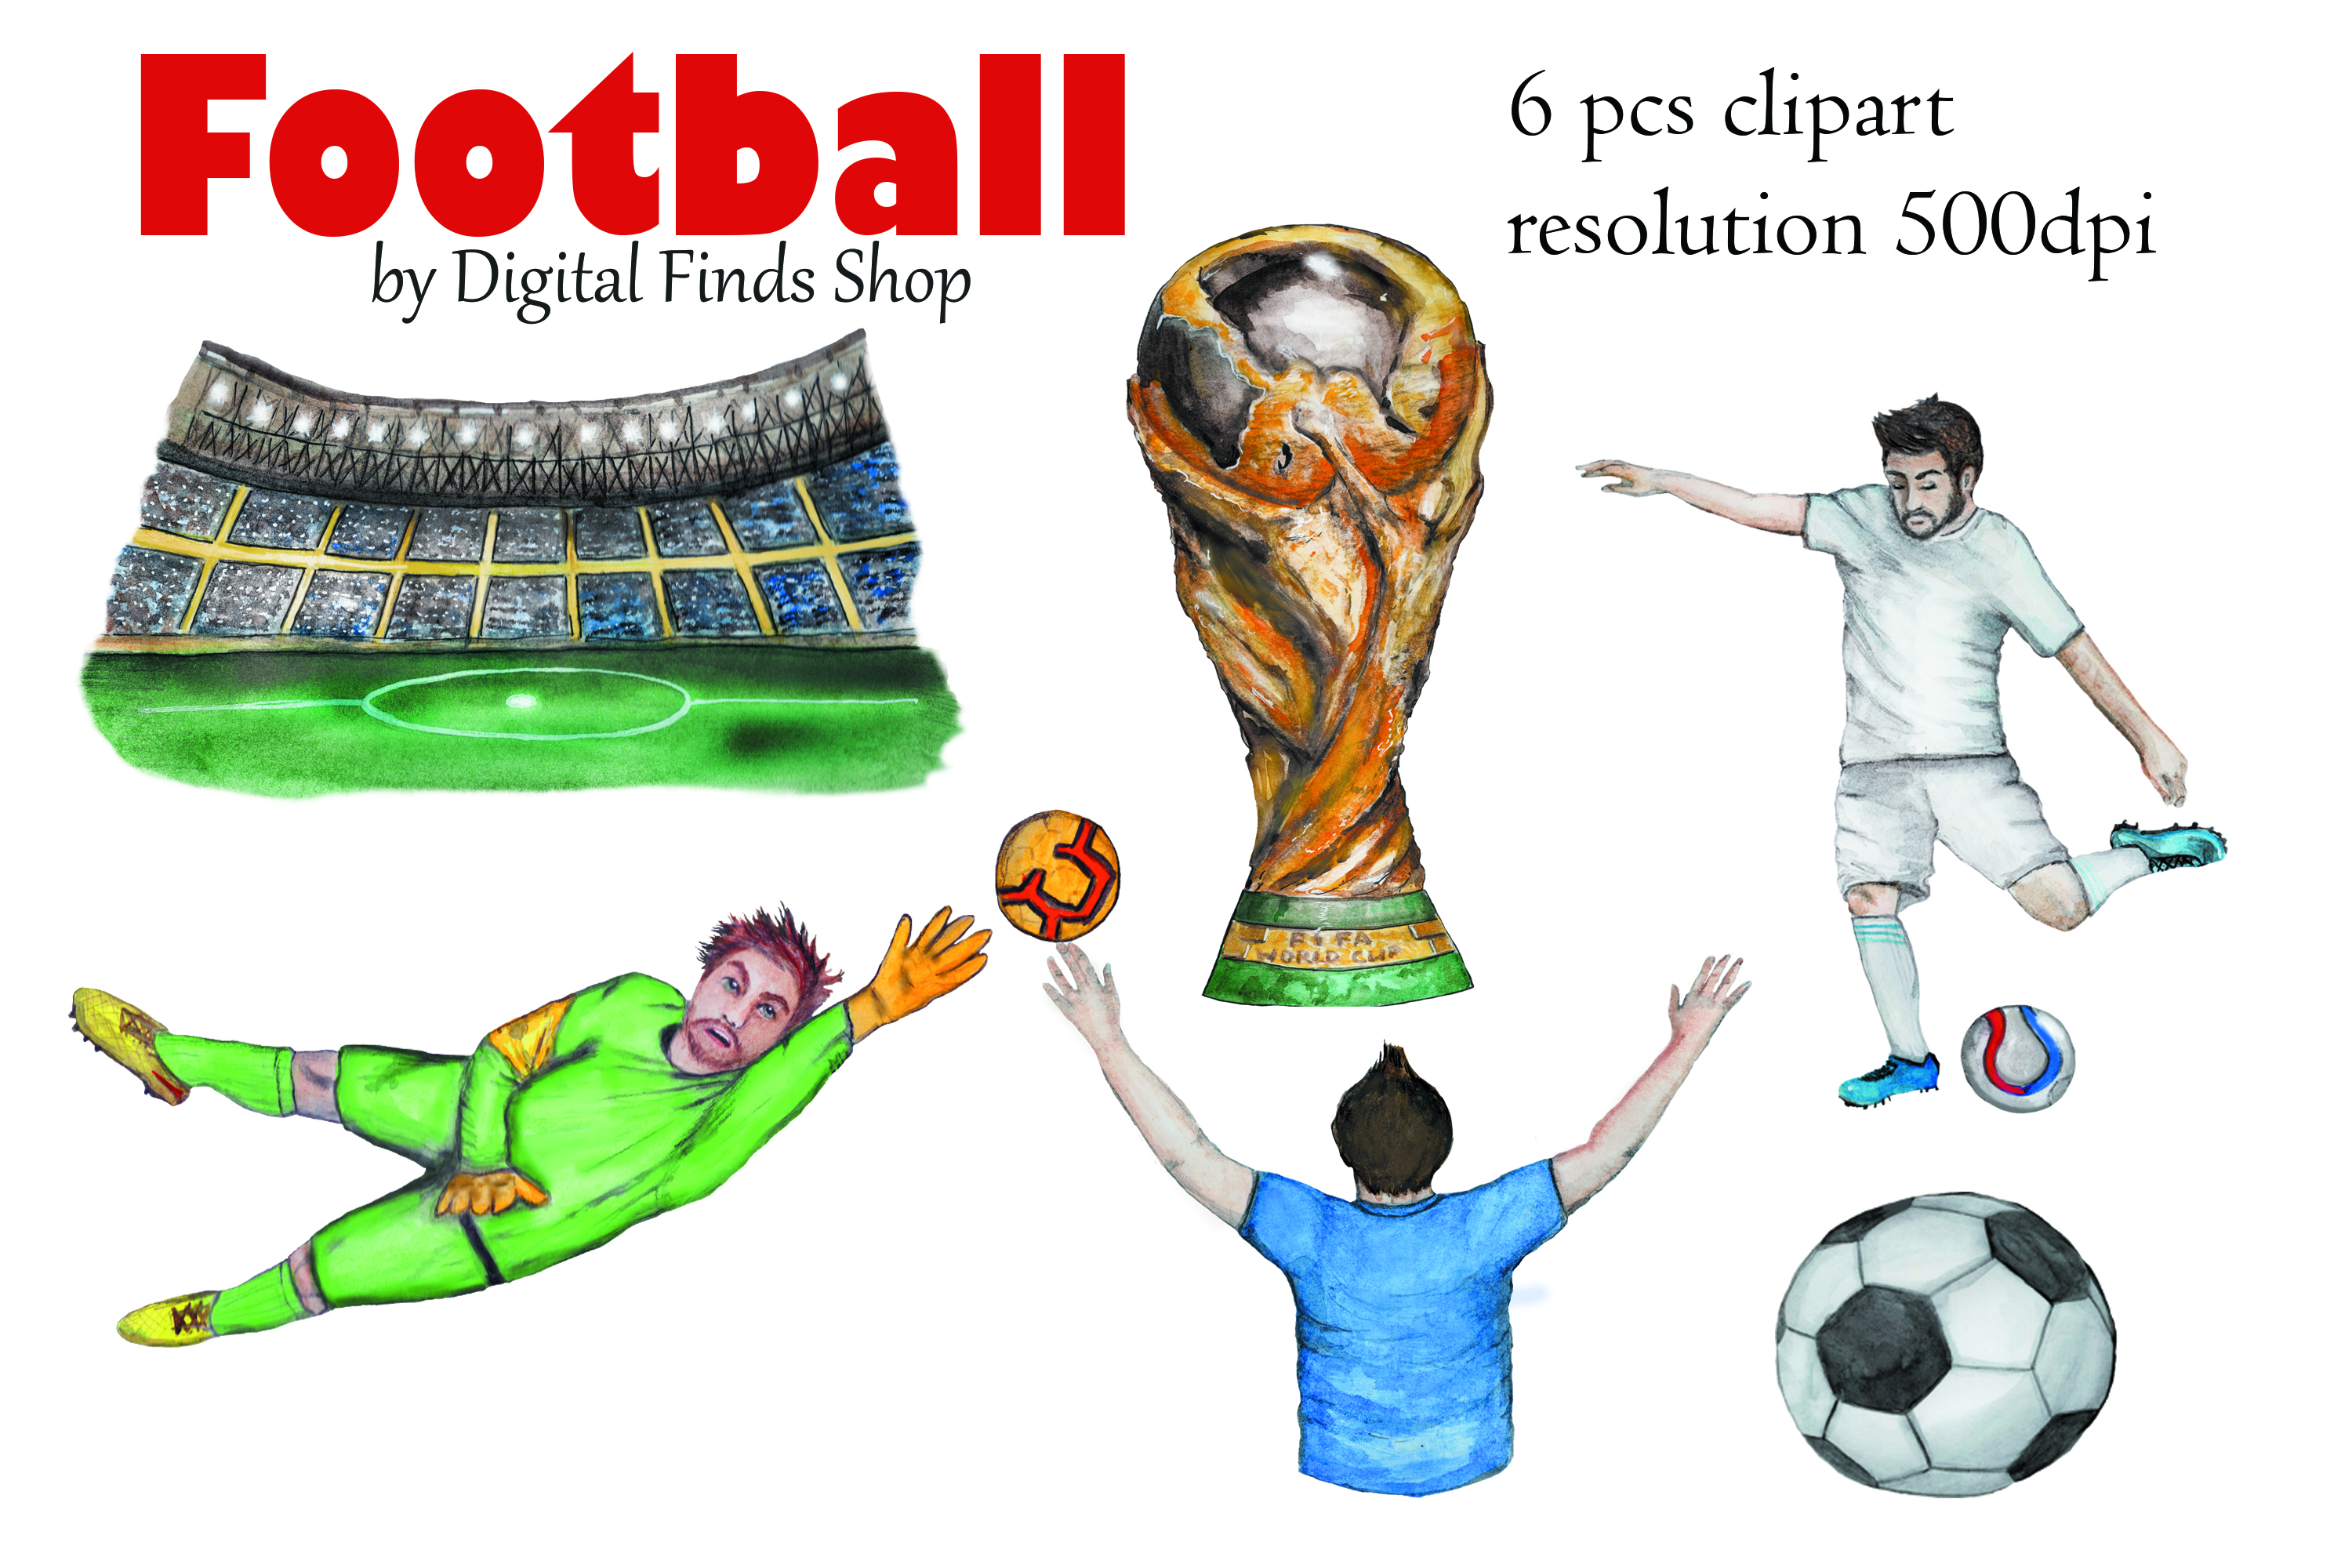 Football clipart, soccer clipart, sport watercolor clipart example image 6